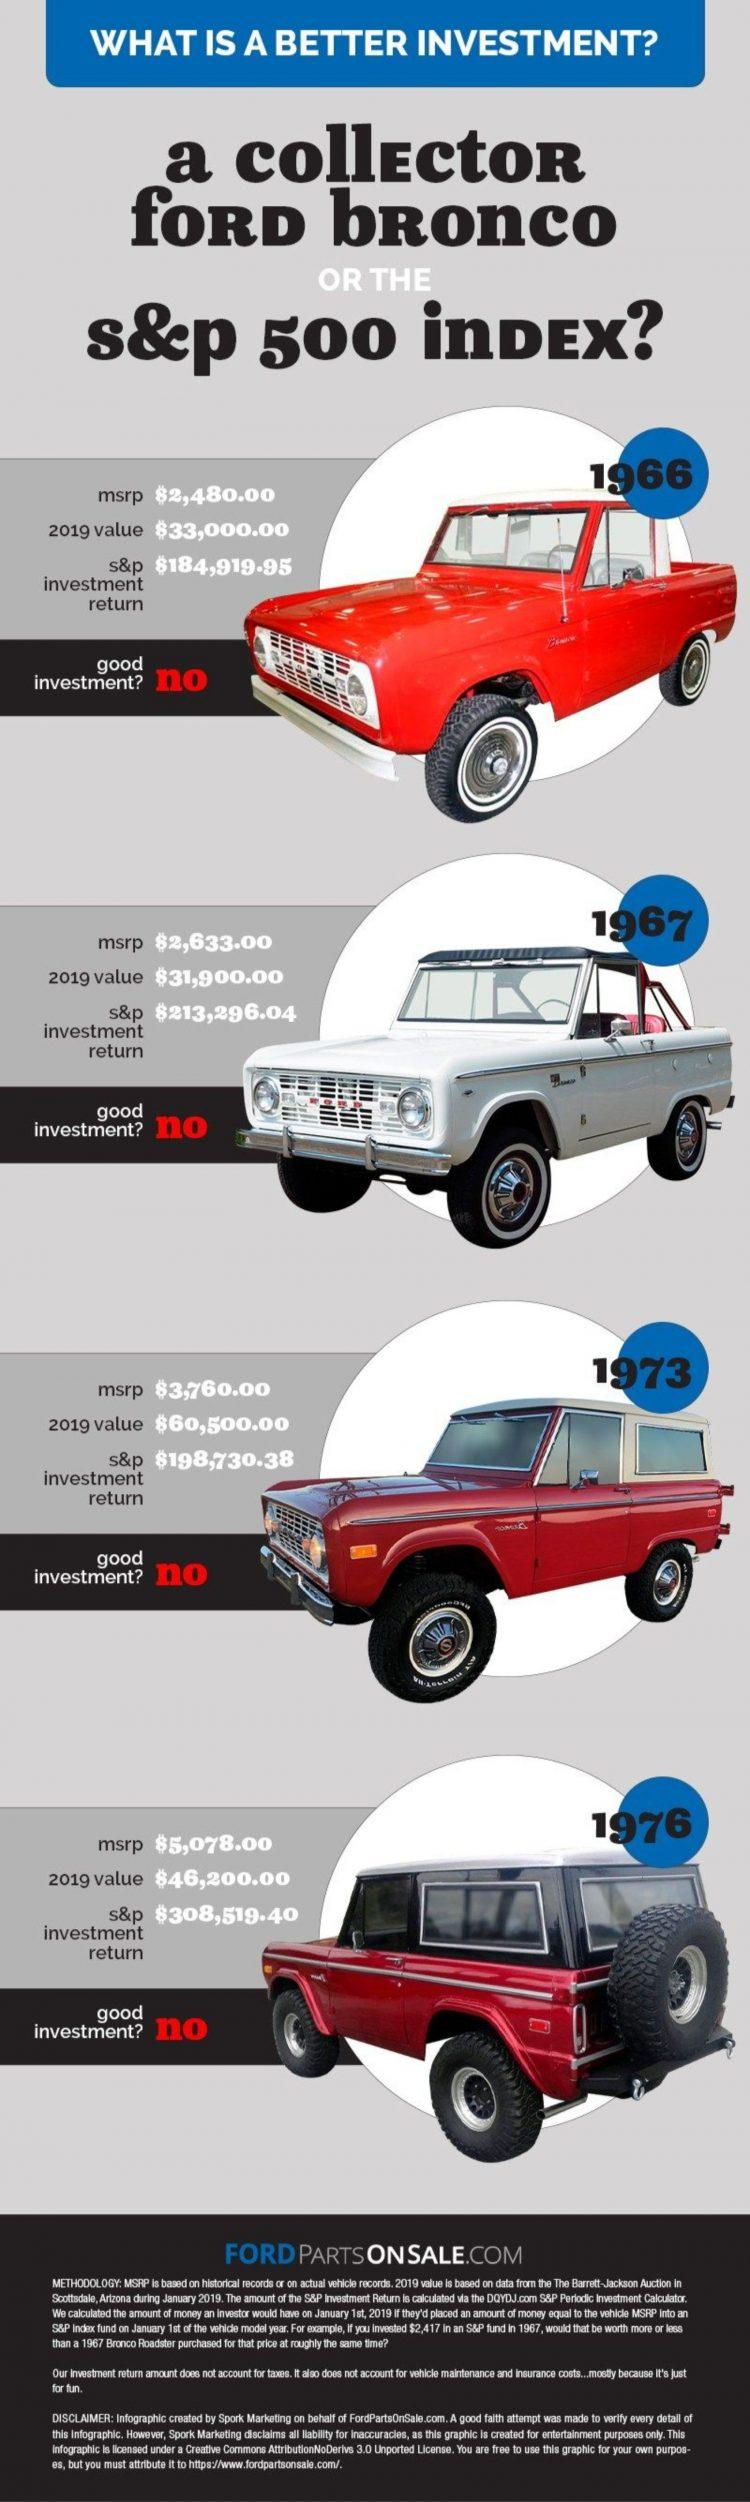 Classic Ford Bronco Versus S&P: Can This 4x4 Out Climb The Markets? 3